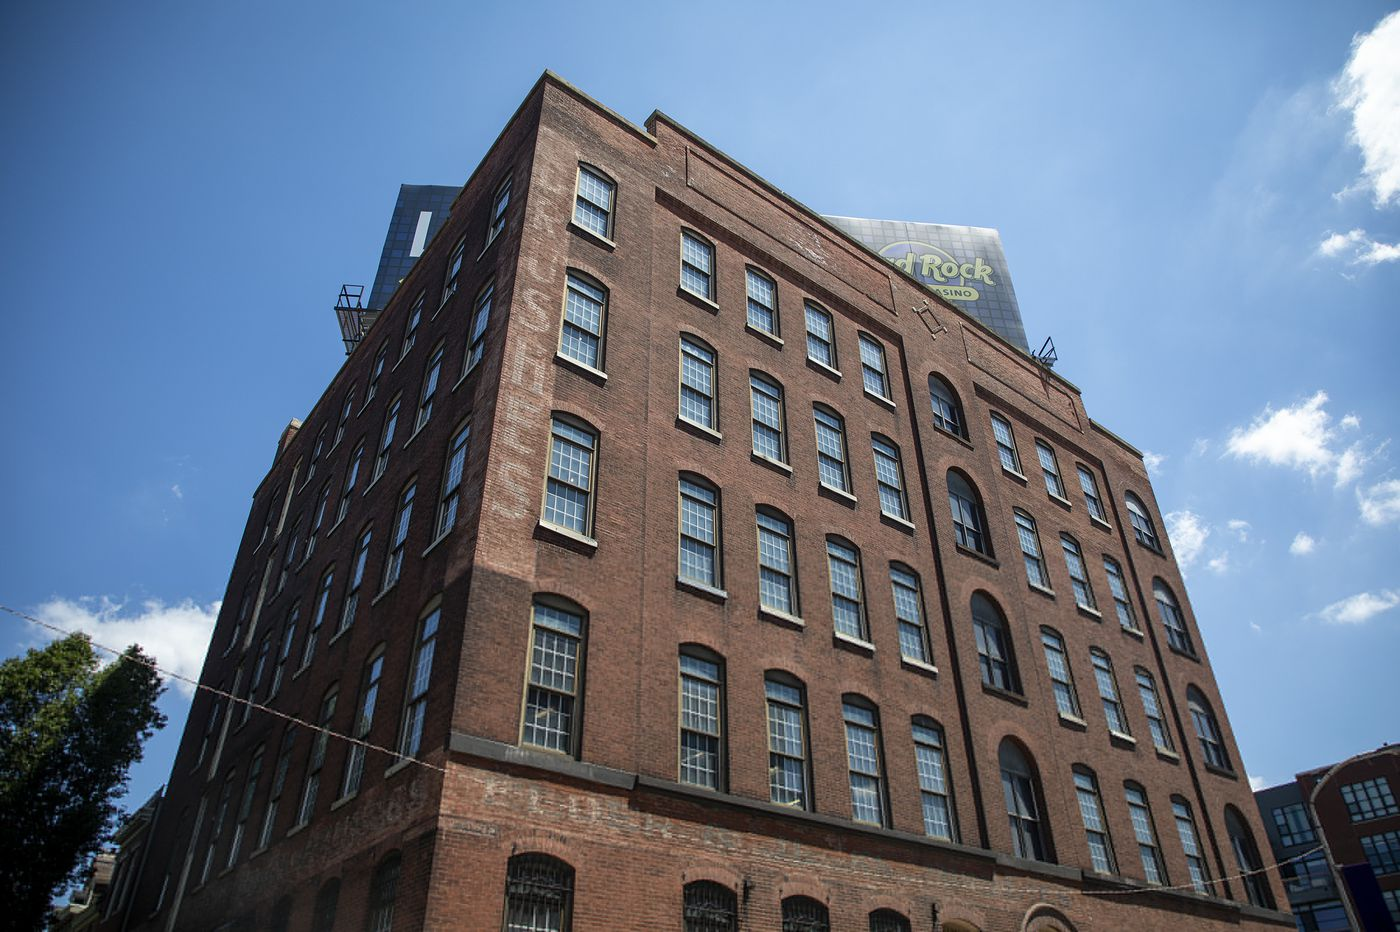 Plans to make Old City former paintbrush factory into a hotel are dead, says owner